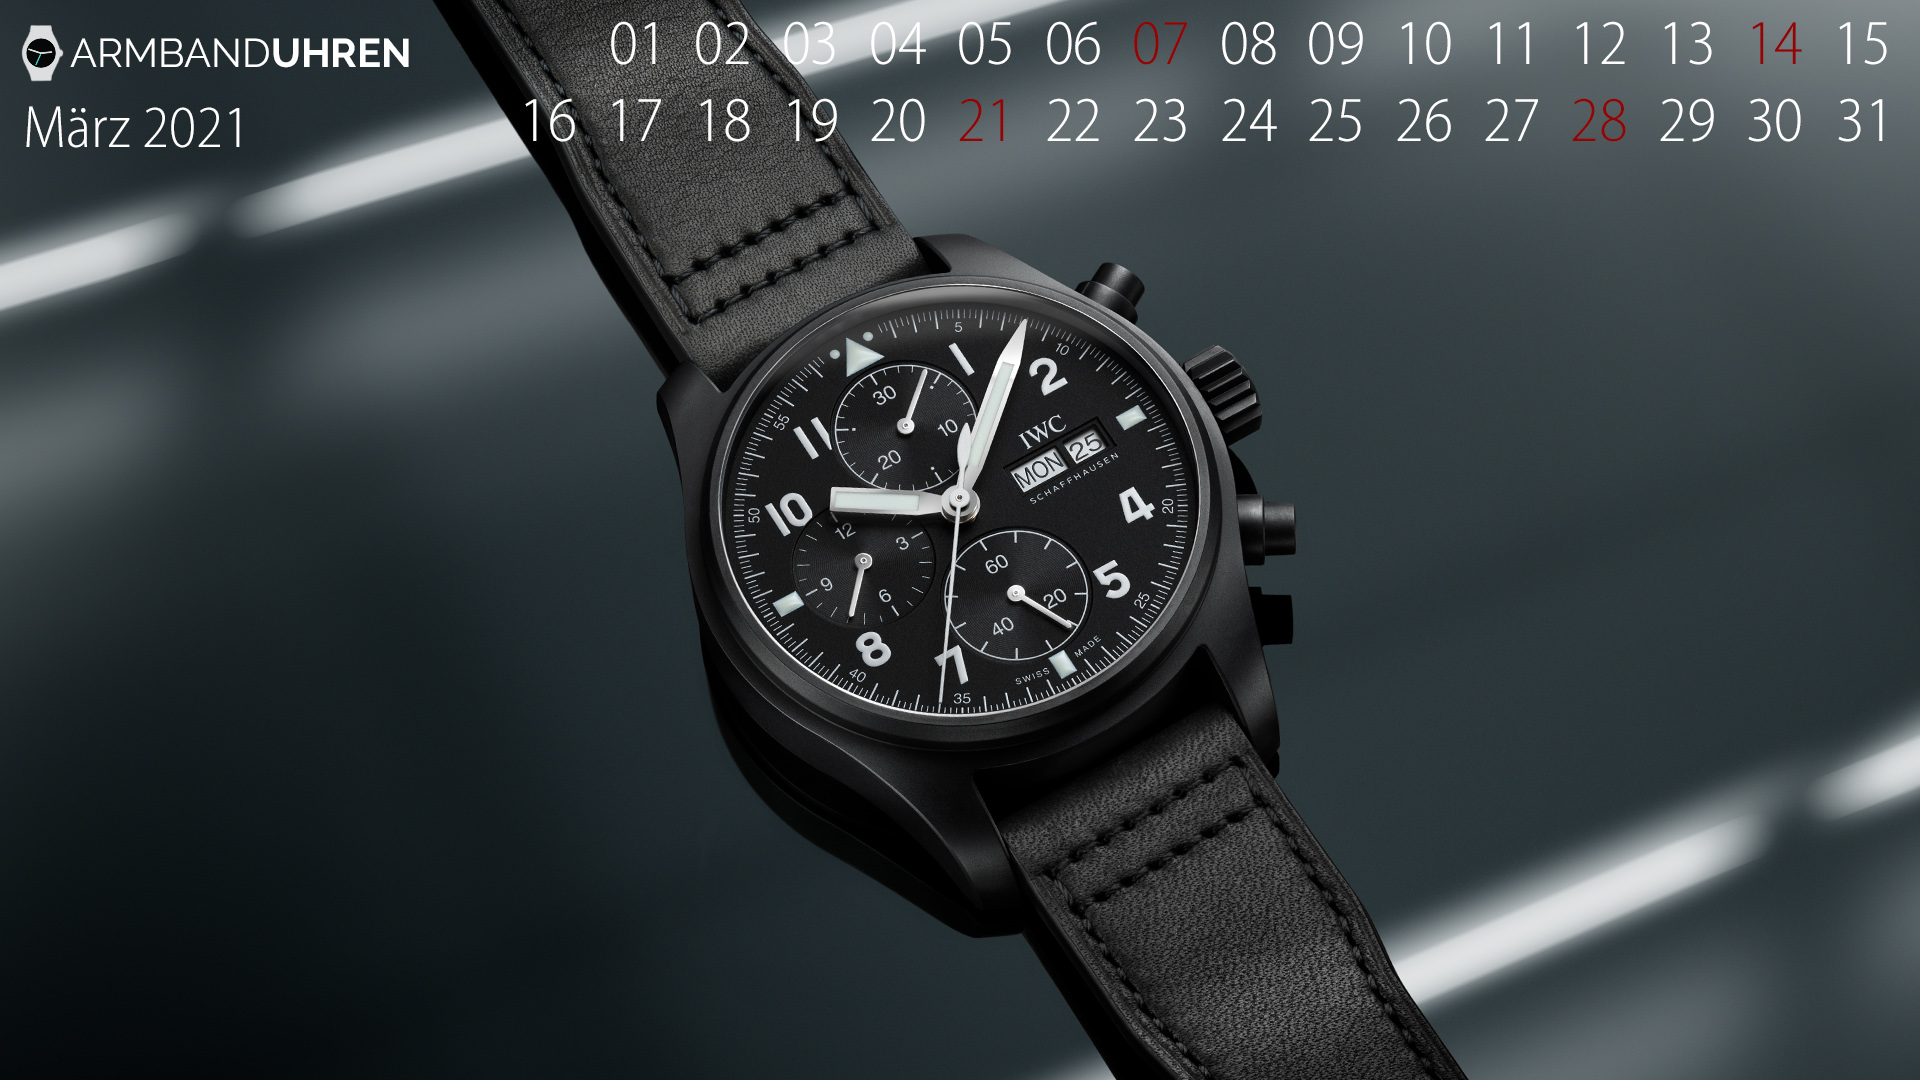 IWC_UHR_DES_MONATS_Maerz2021_PILOTS WATCH CHRONOGRAPH TRIBUTE TO 3705_IW387905